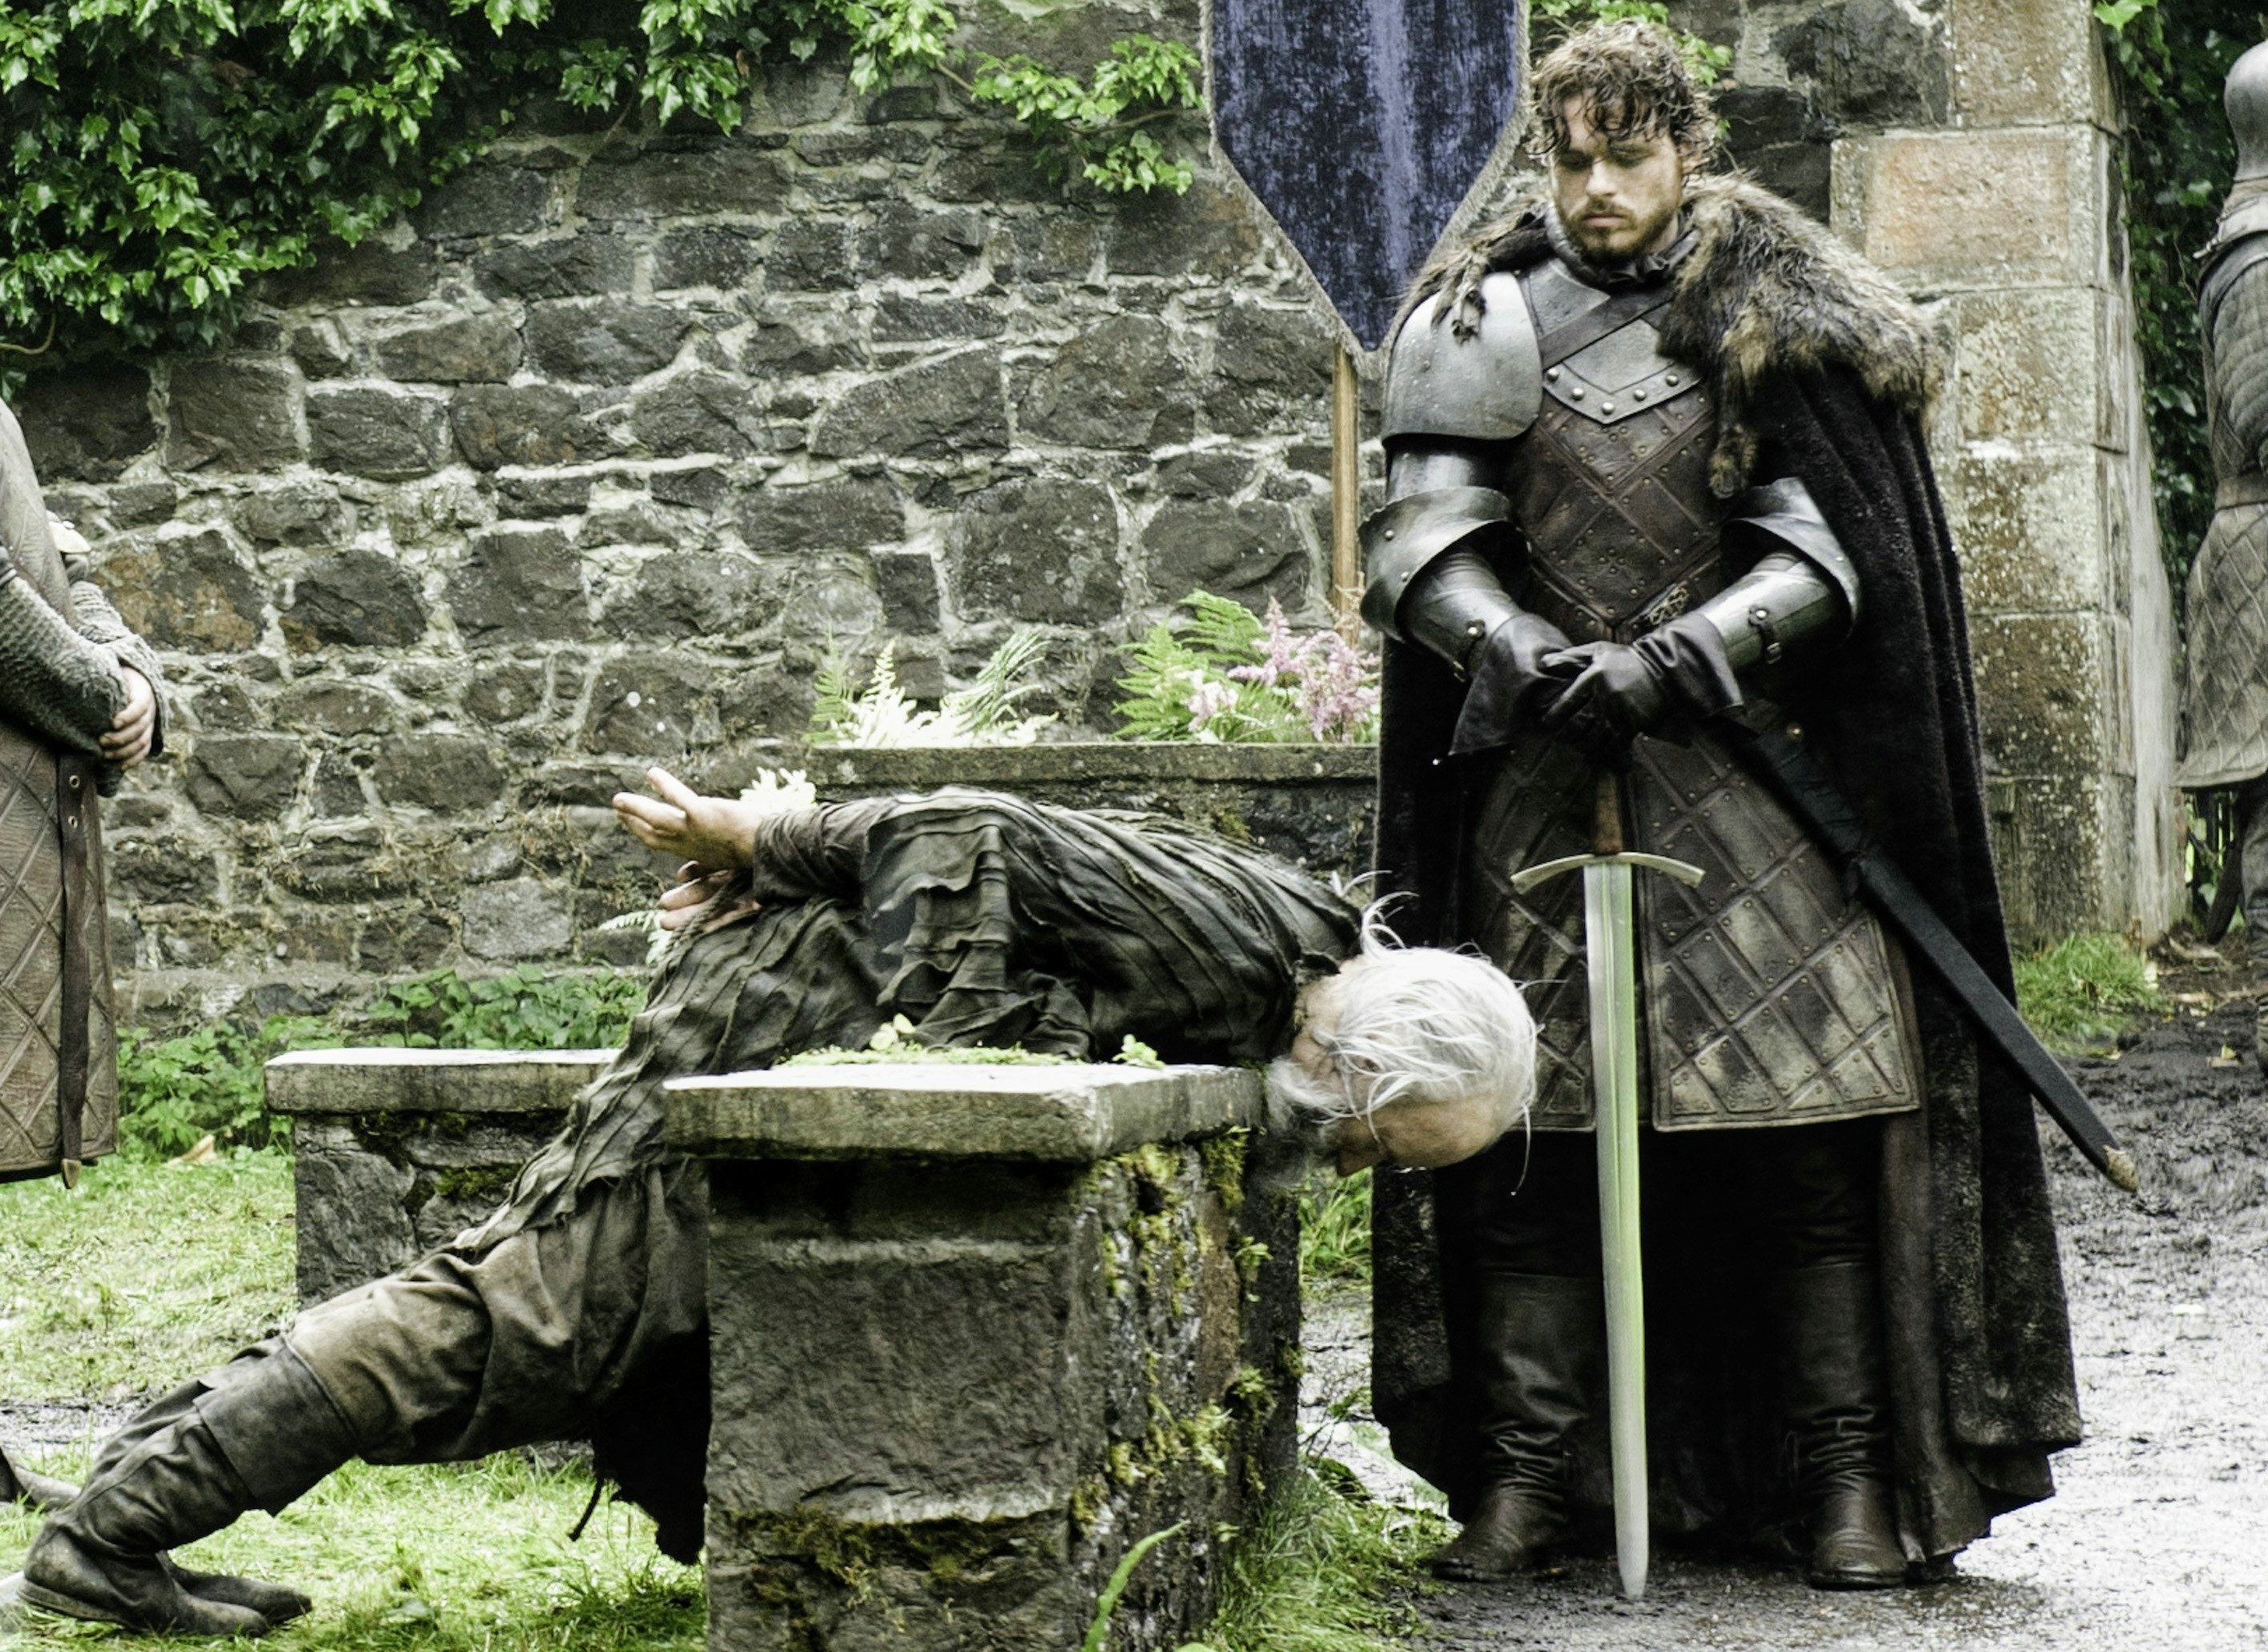 Robb Stark Execution of Karstark Season 3